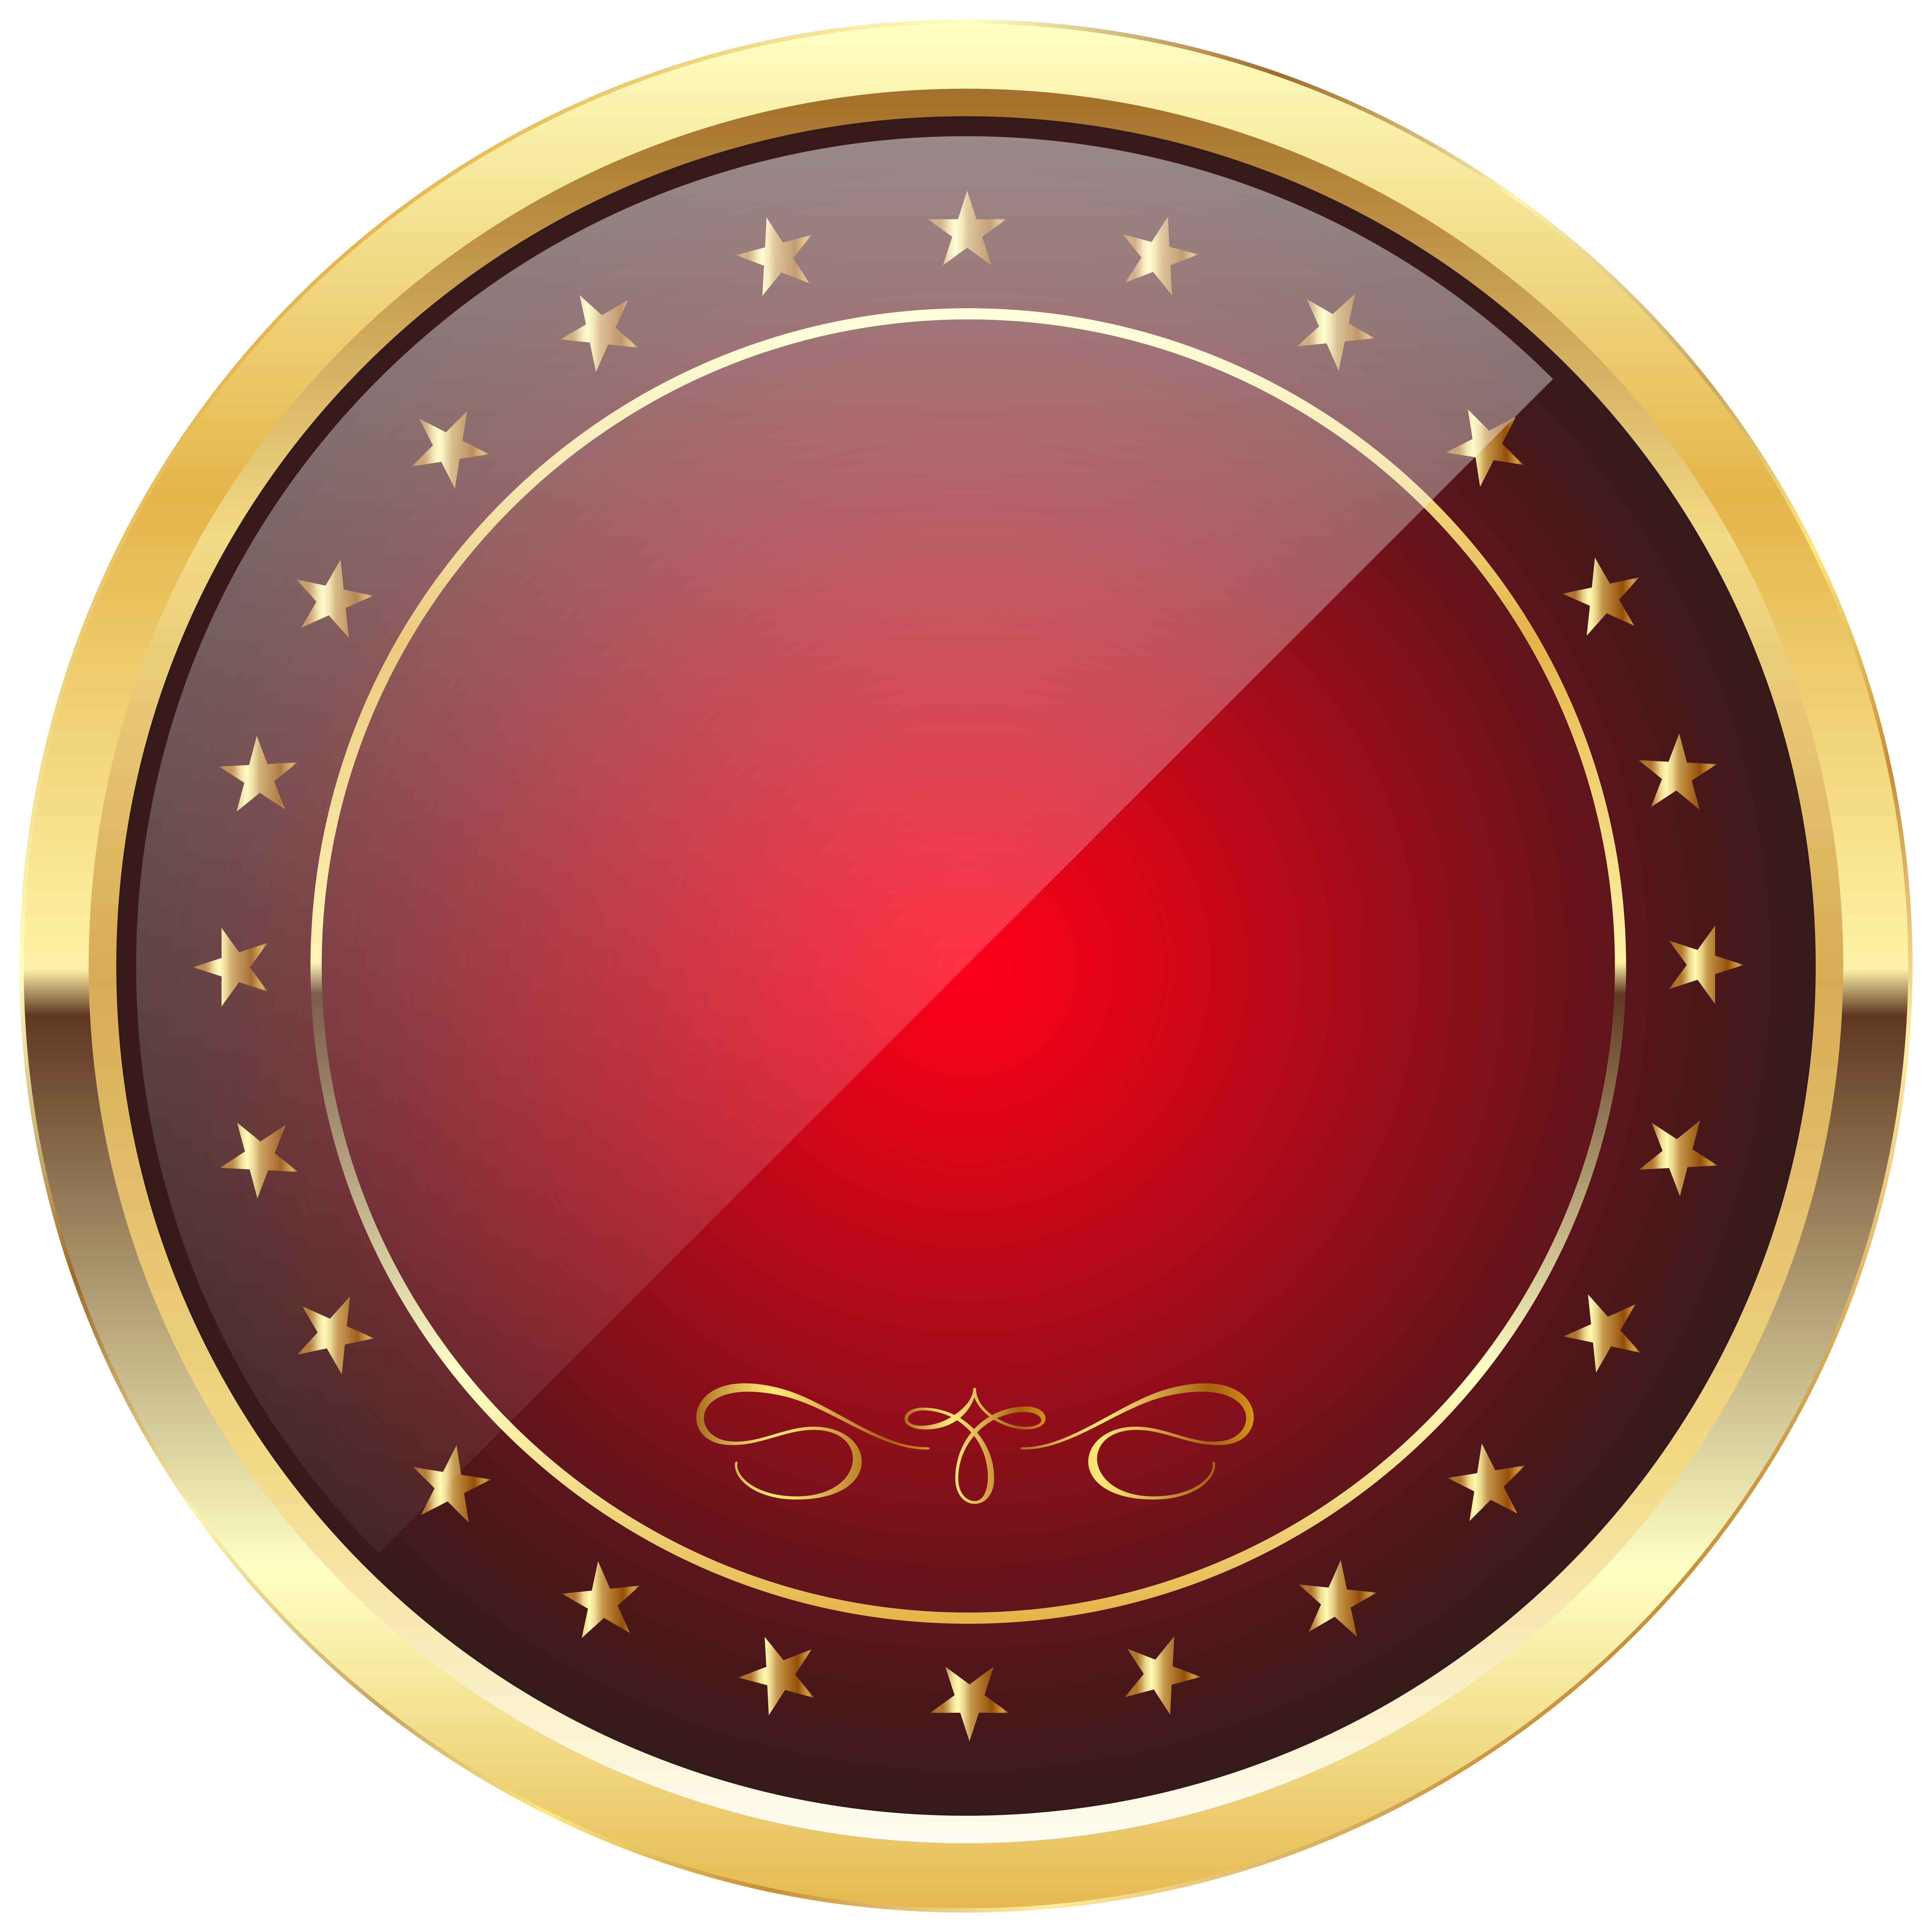 Watermelon clipart template. Red and gold badge